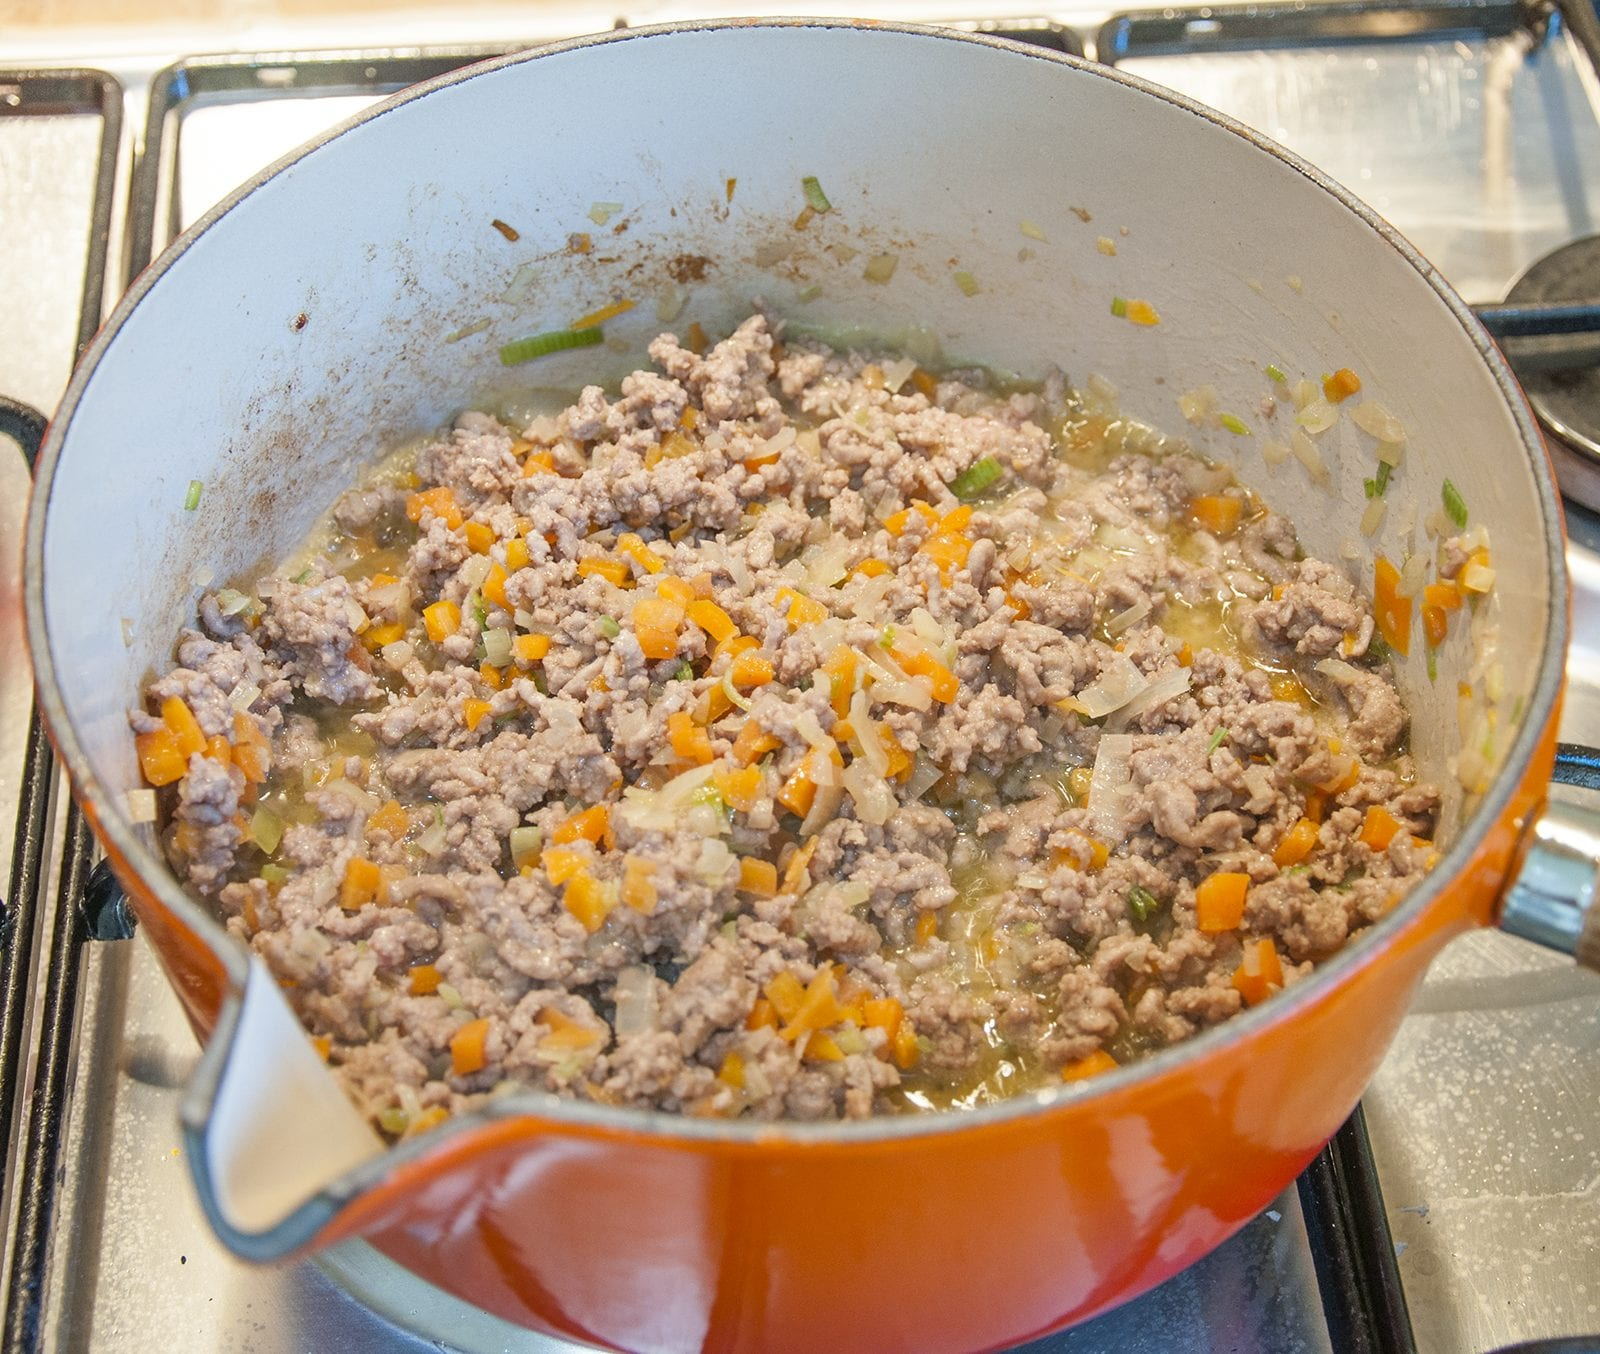 Cheddar topped shepherd's pie. Cook the minced lamb